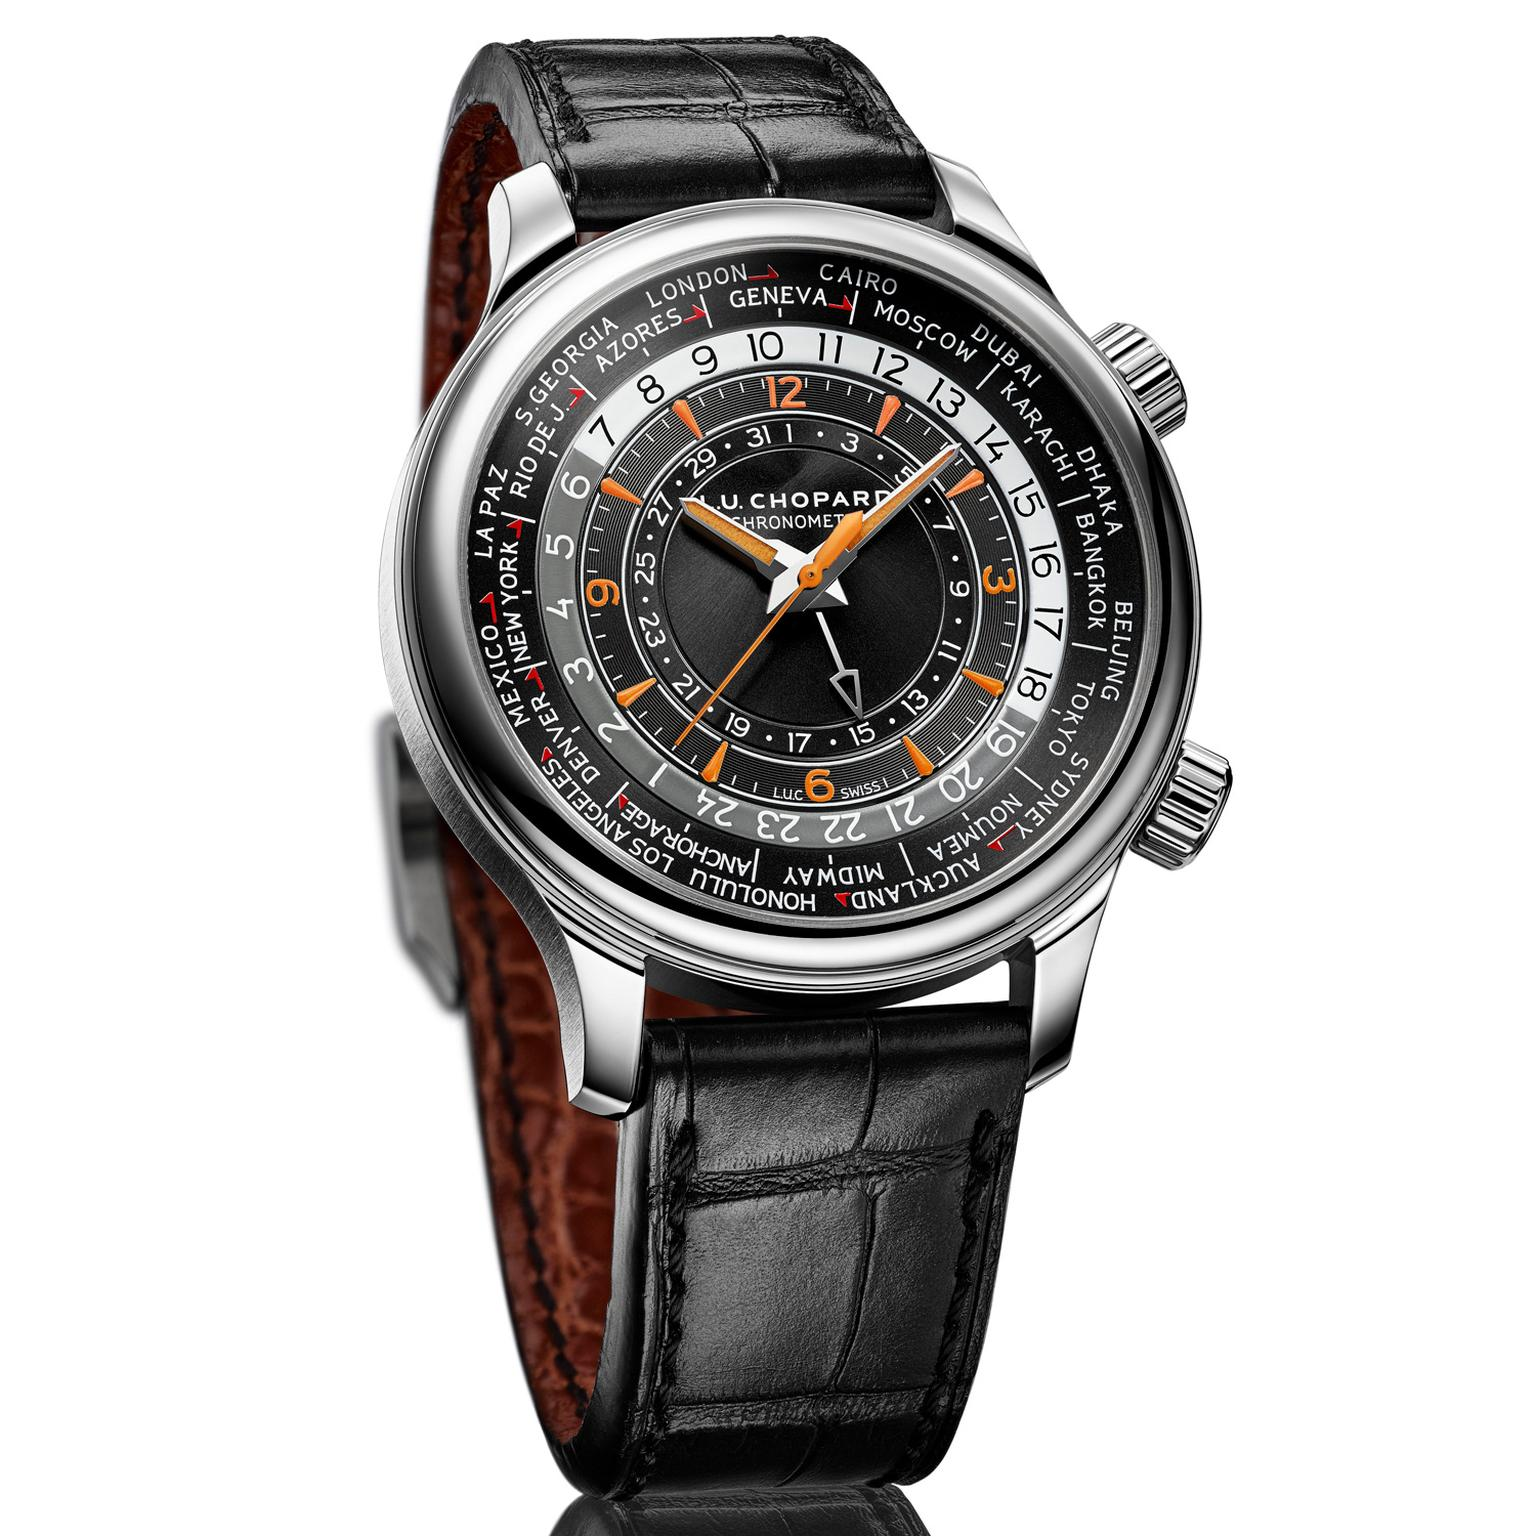 Chopard L.U.C Time Traveler One watch in steel